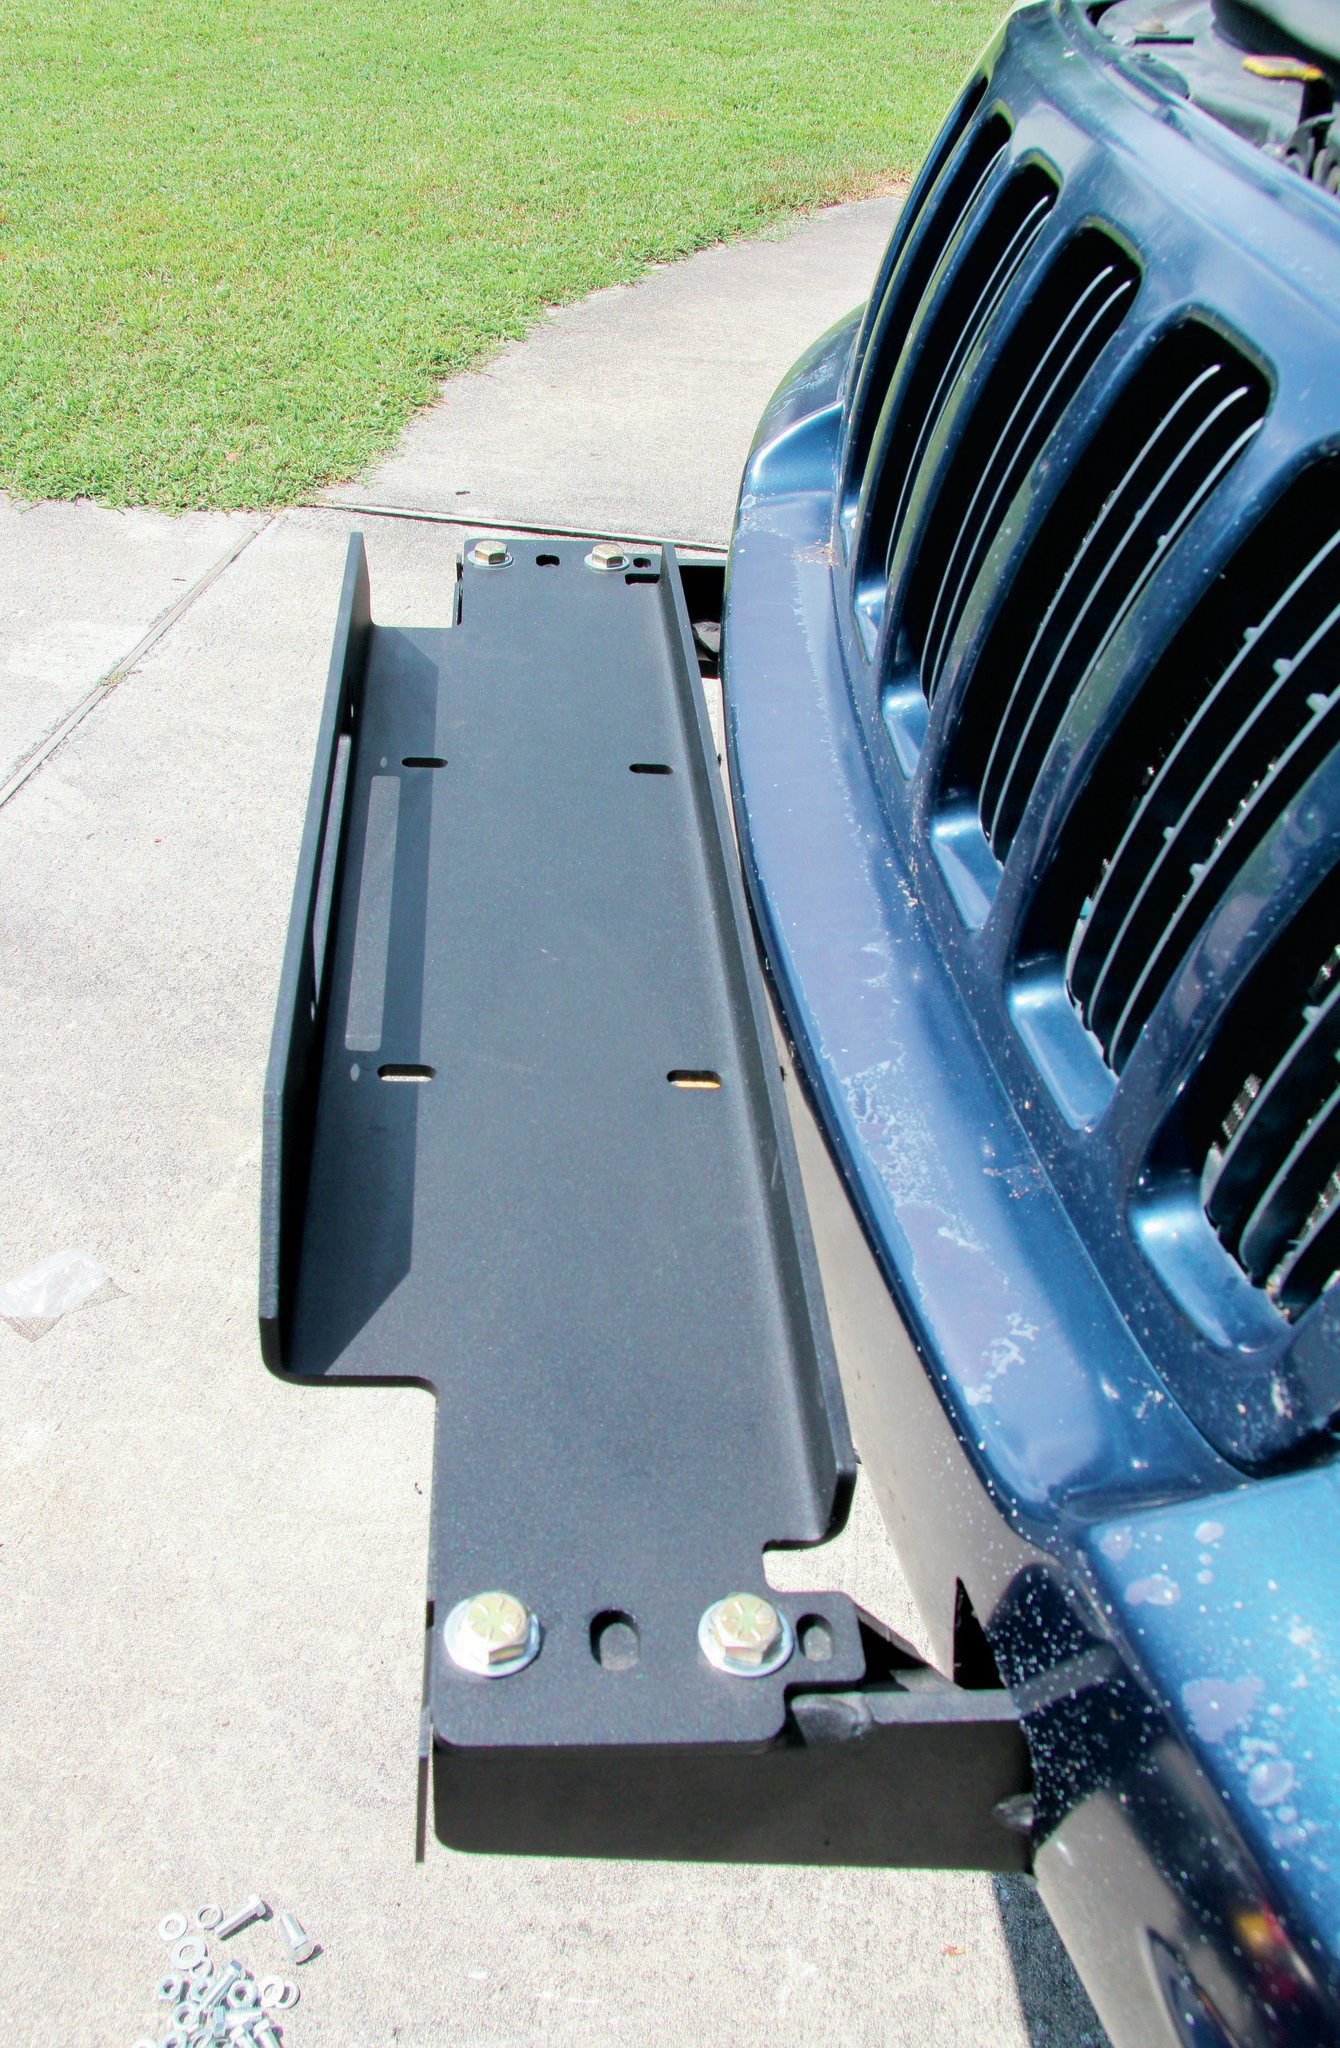 The winch tray simply bolts to the bumper arms. Be sure to attach your fairlead before setting the winch in place.